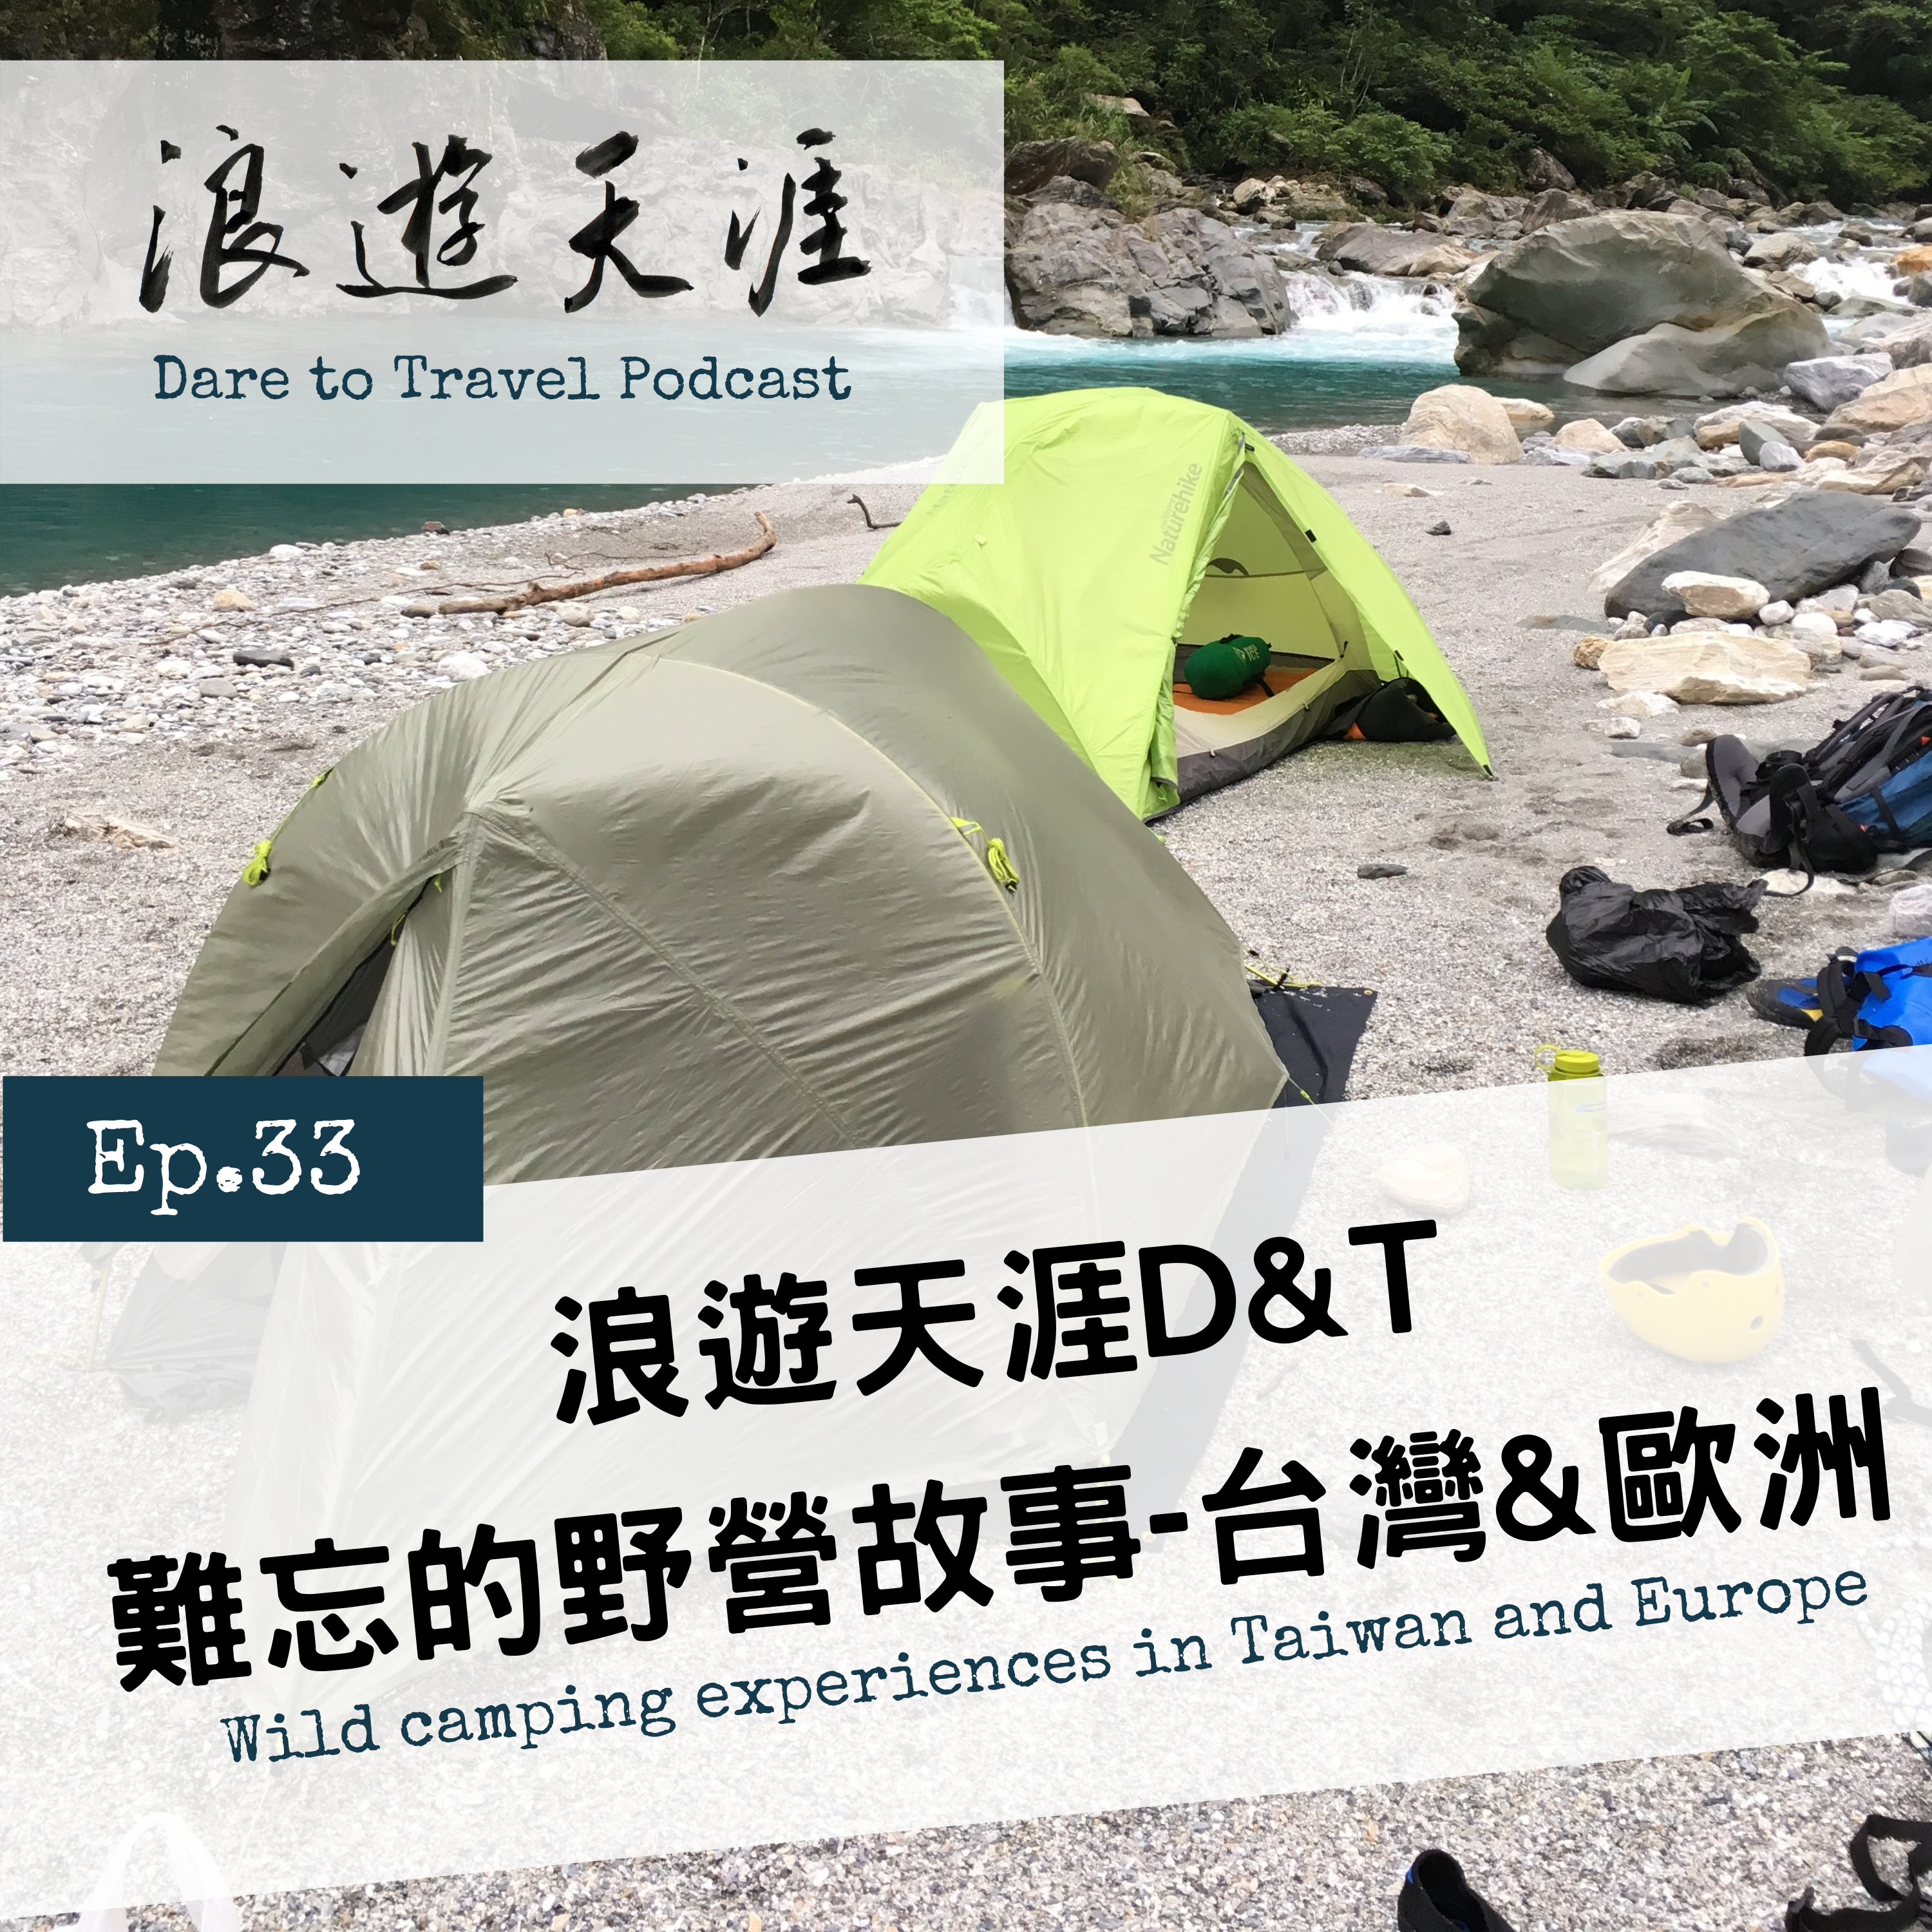 Ep. 33 浪遊天涯 D&T  難忘的野營故事-台灣&歐洲  Wild camping experiences in Taiwan and Europe ft. Truman and Duncan